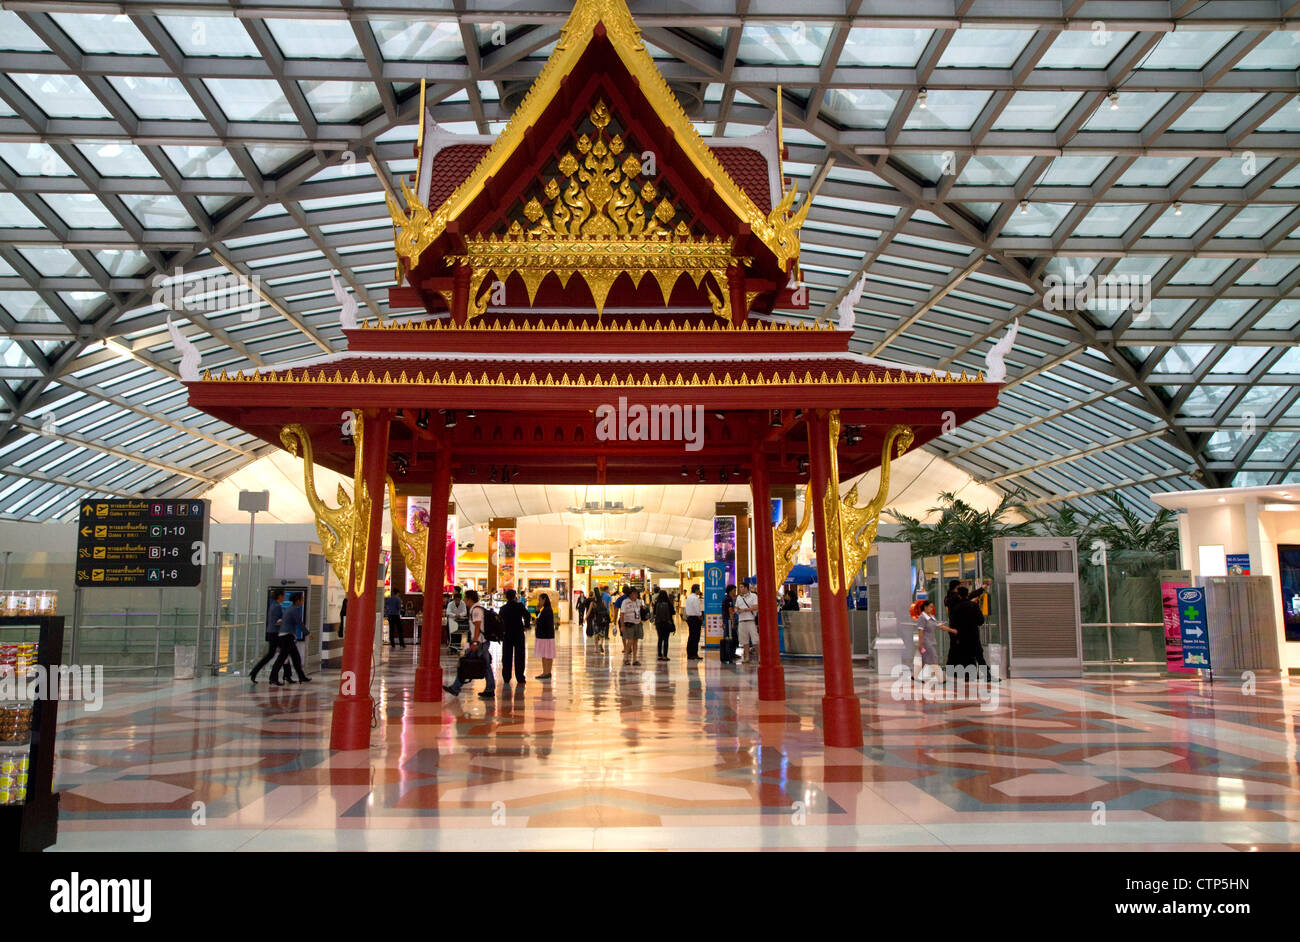 Thai Architecture In The Terminal At The Suvarnabhumi Airport Or